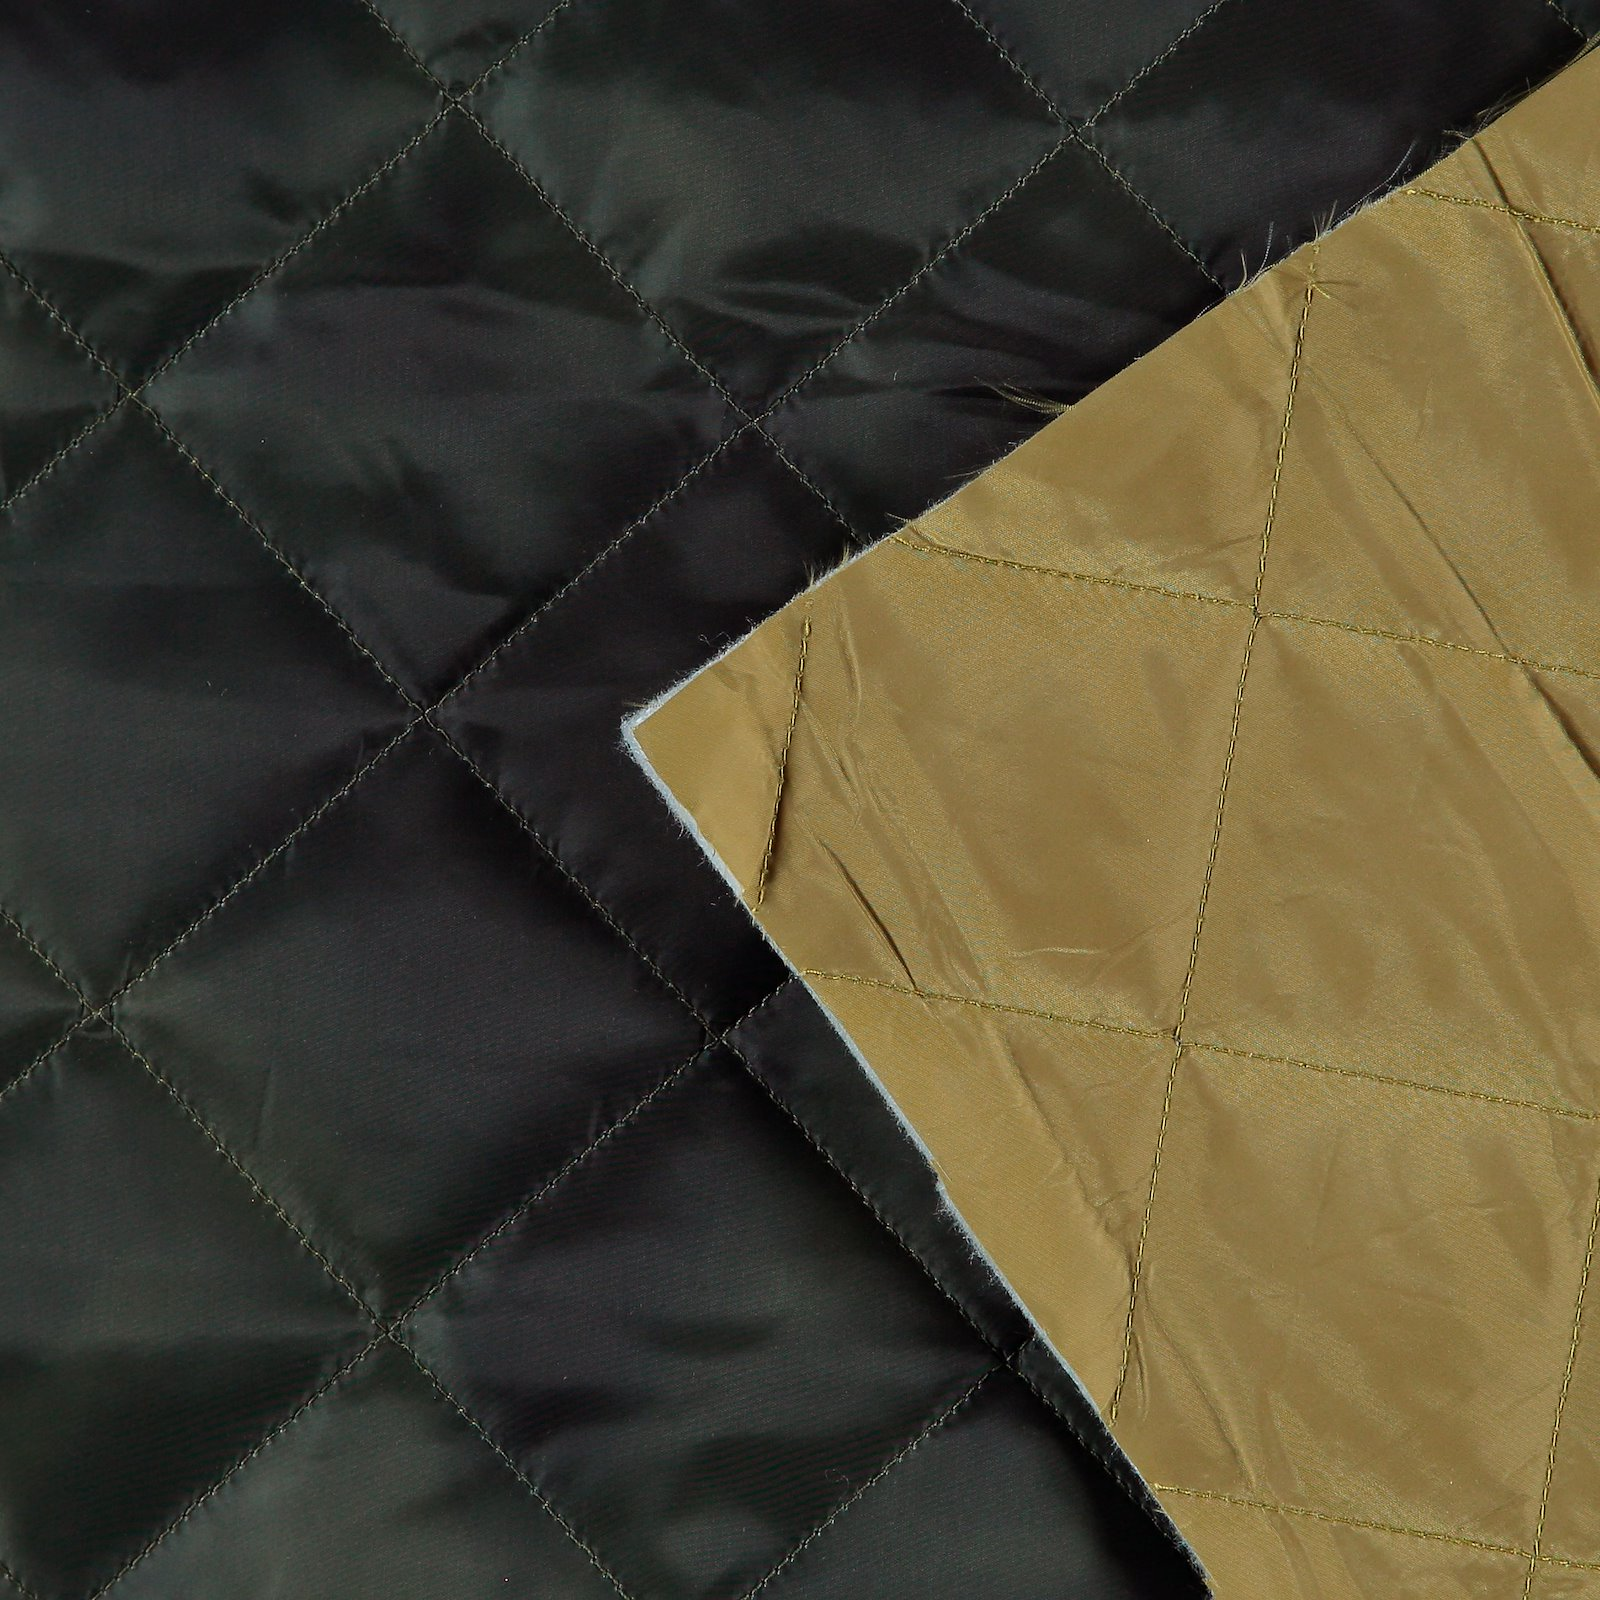 Woven quilt with army green batik print 920245_pack_b